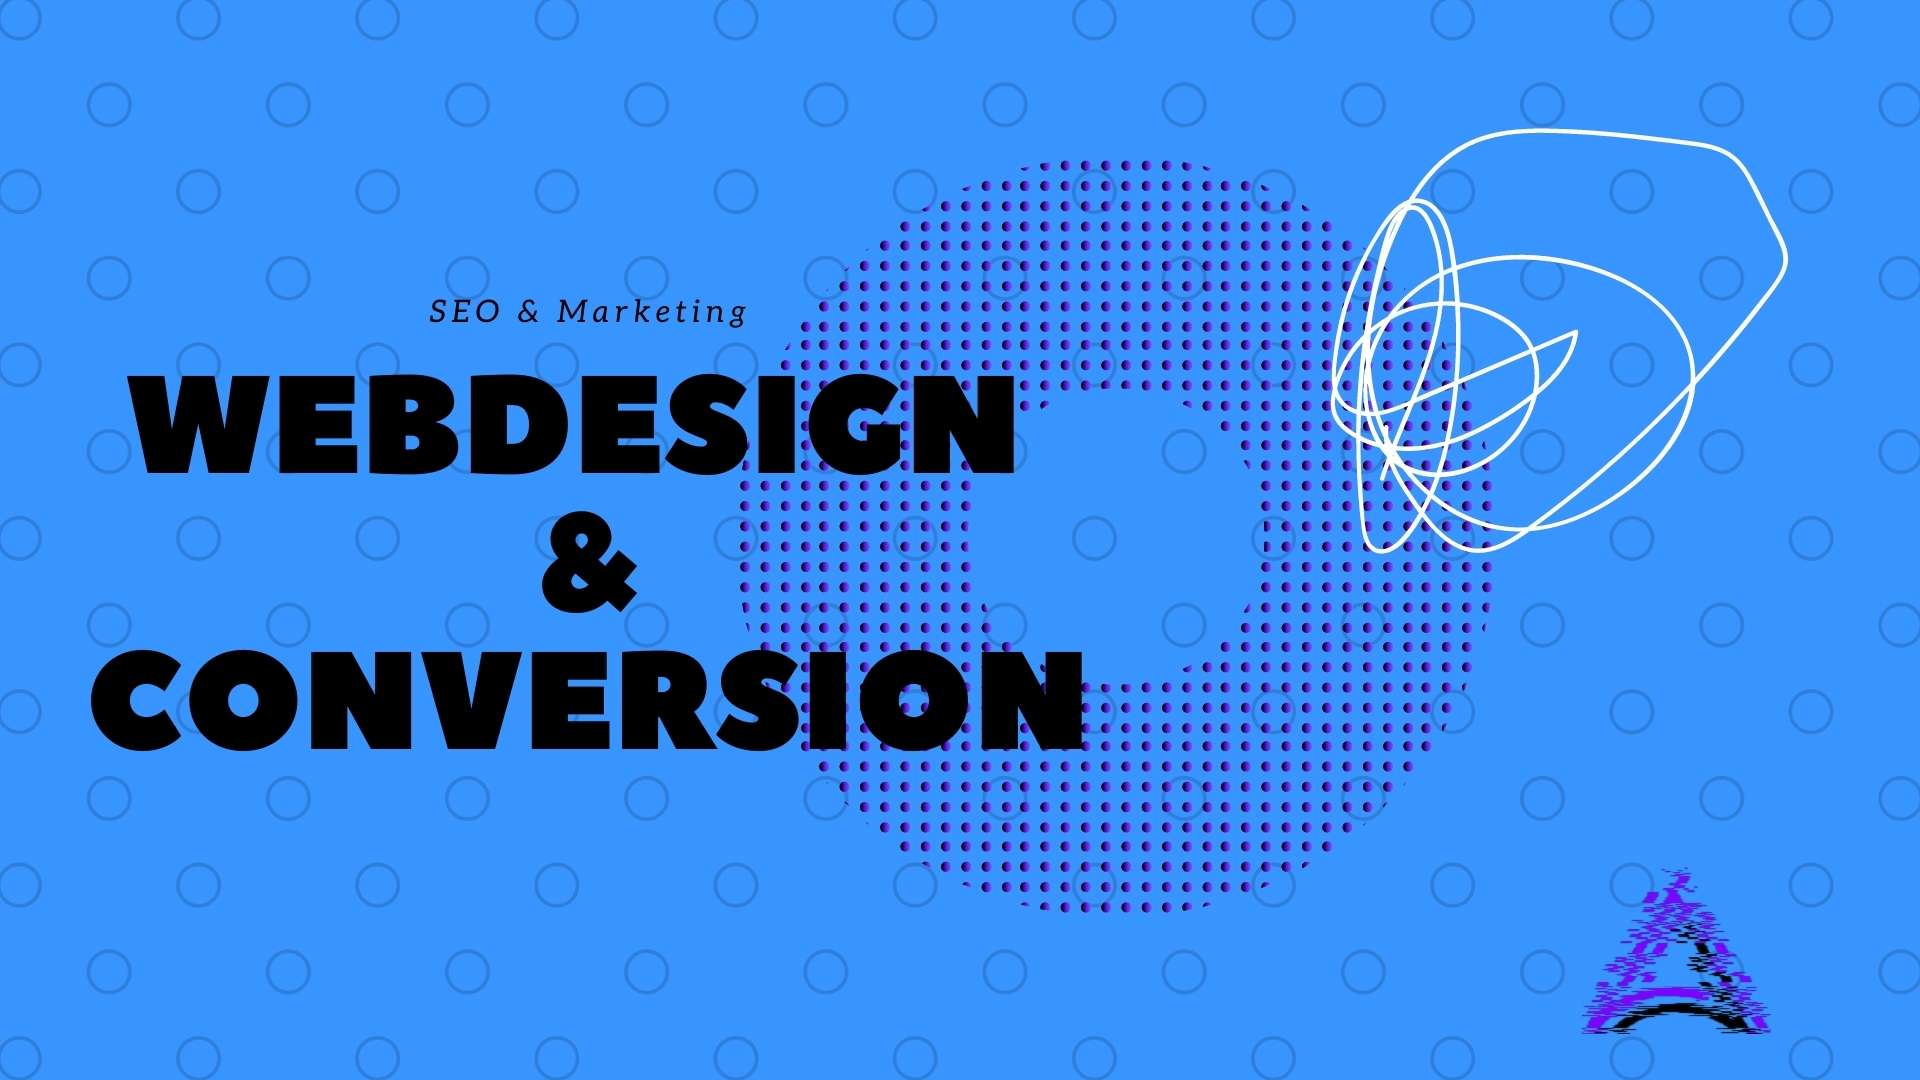 webdesign conversion